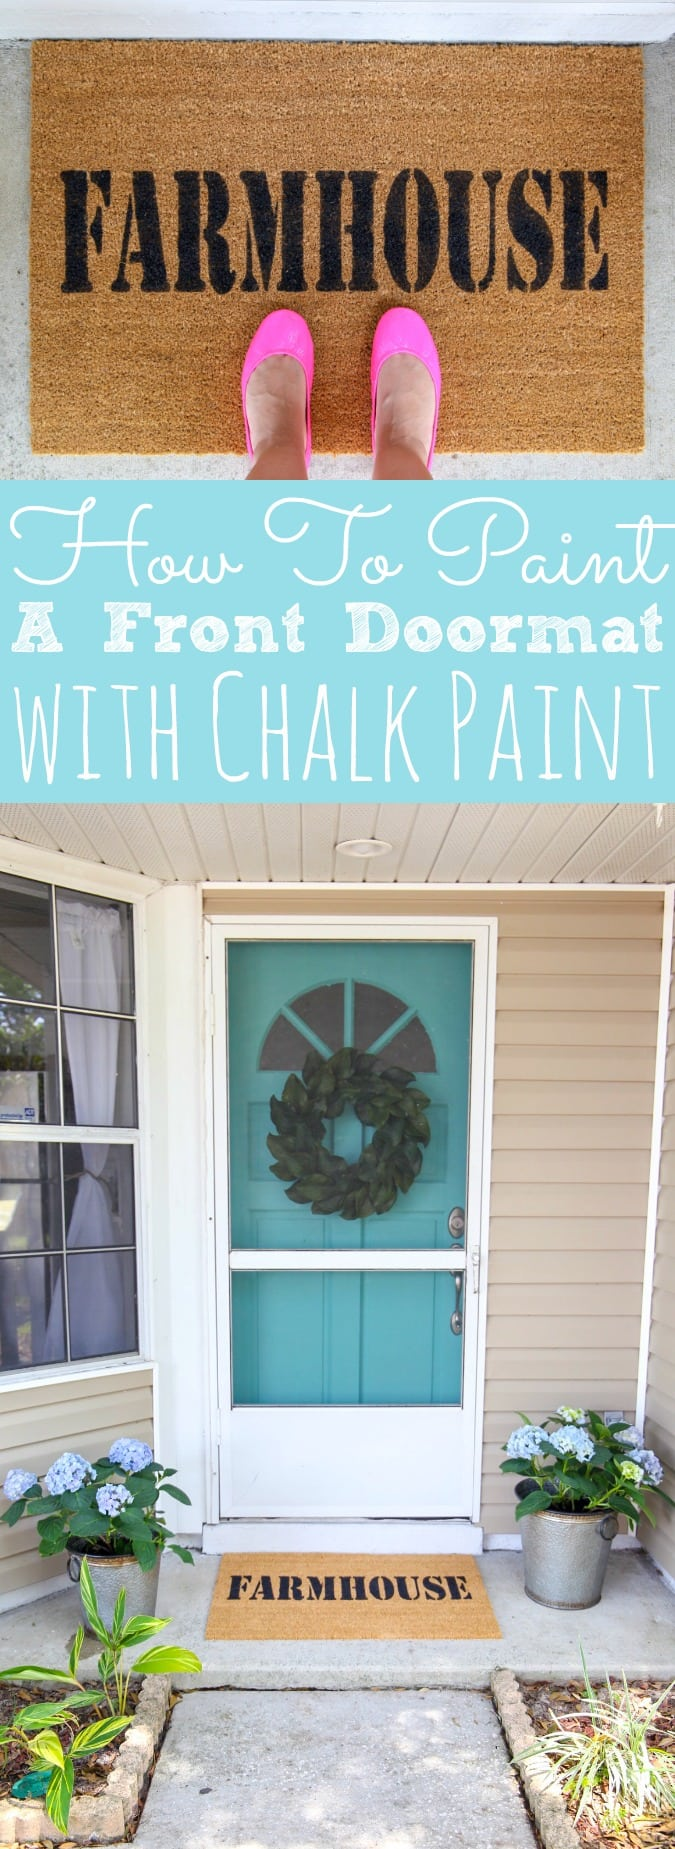 Custom Doormat with Chalk Paint